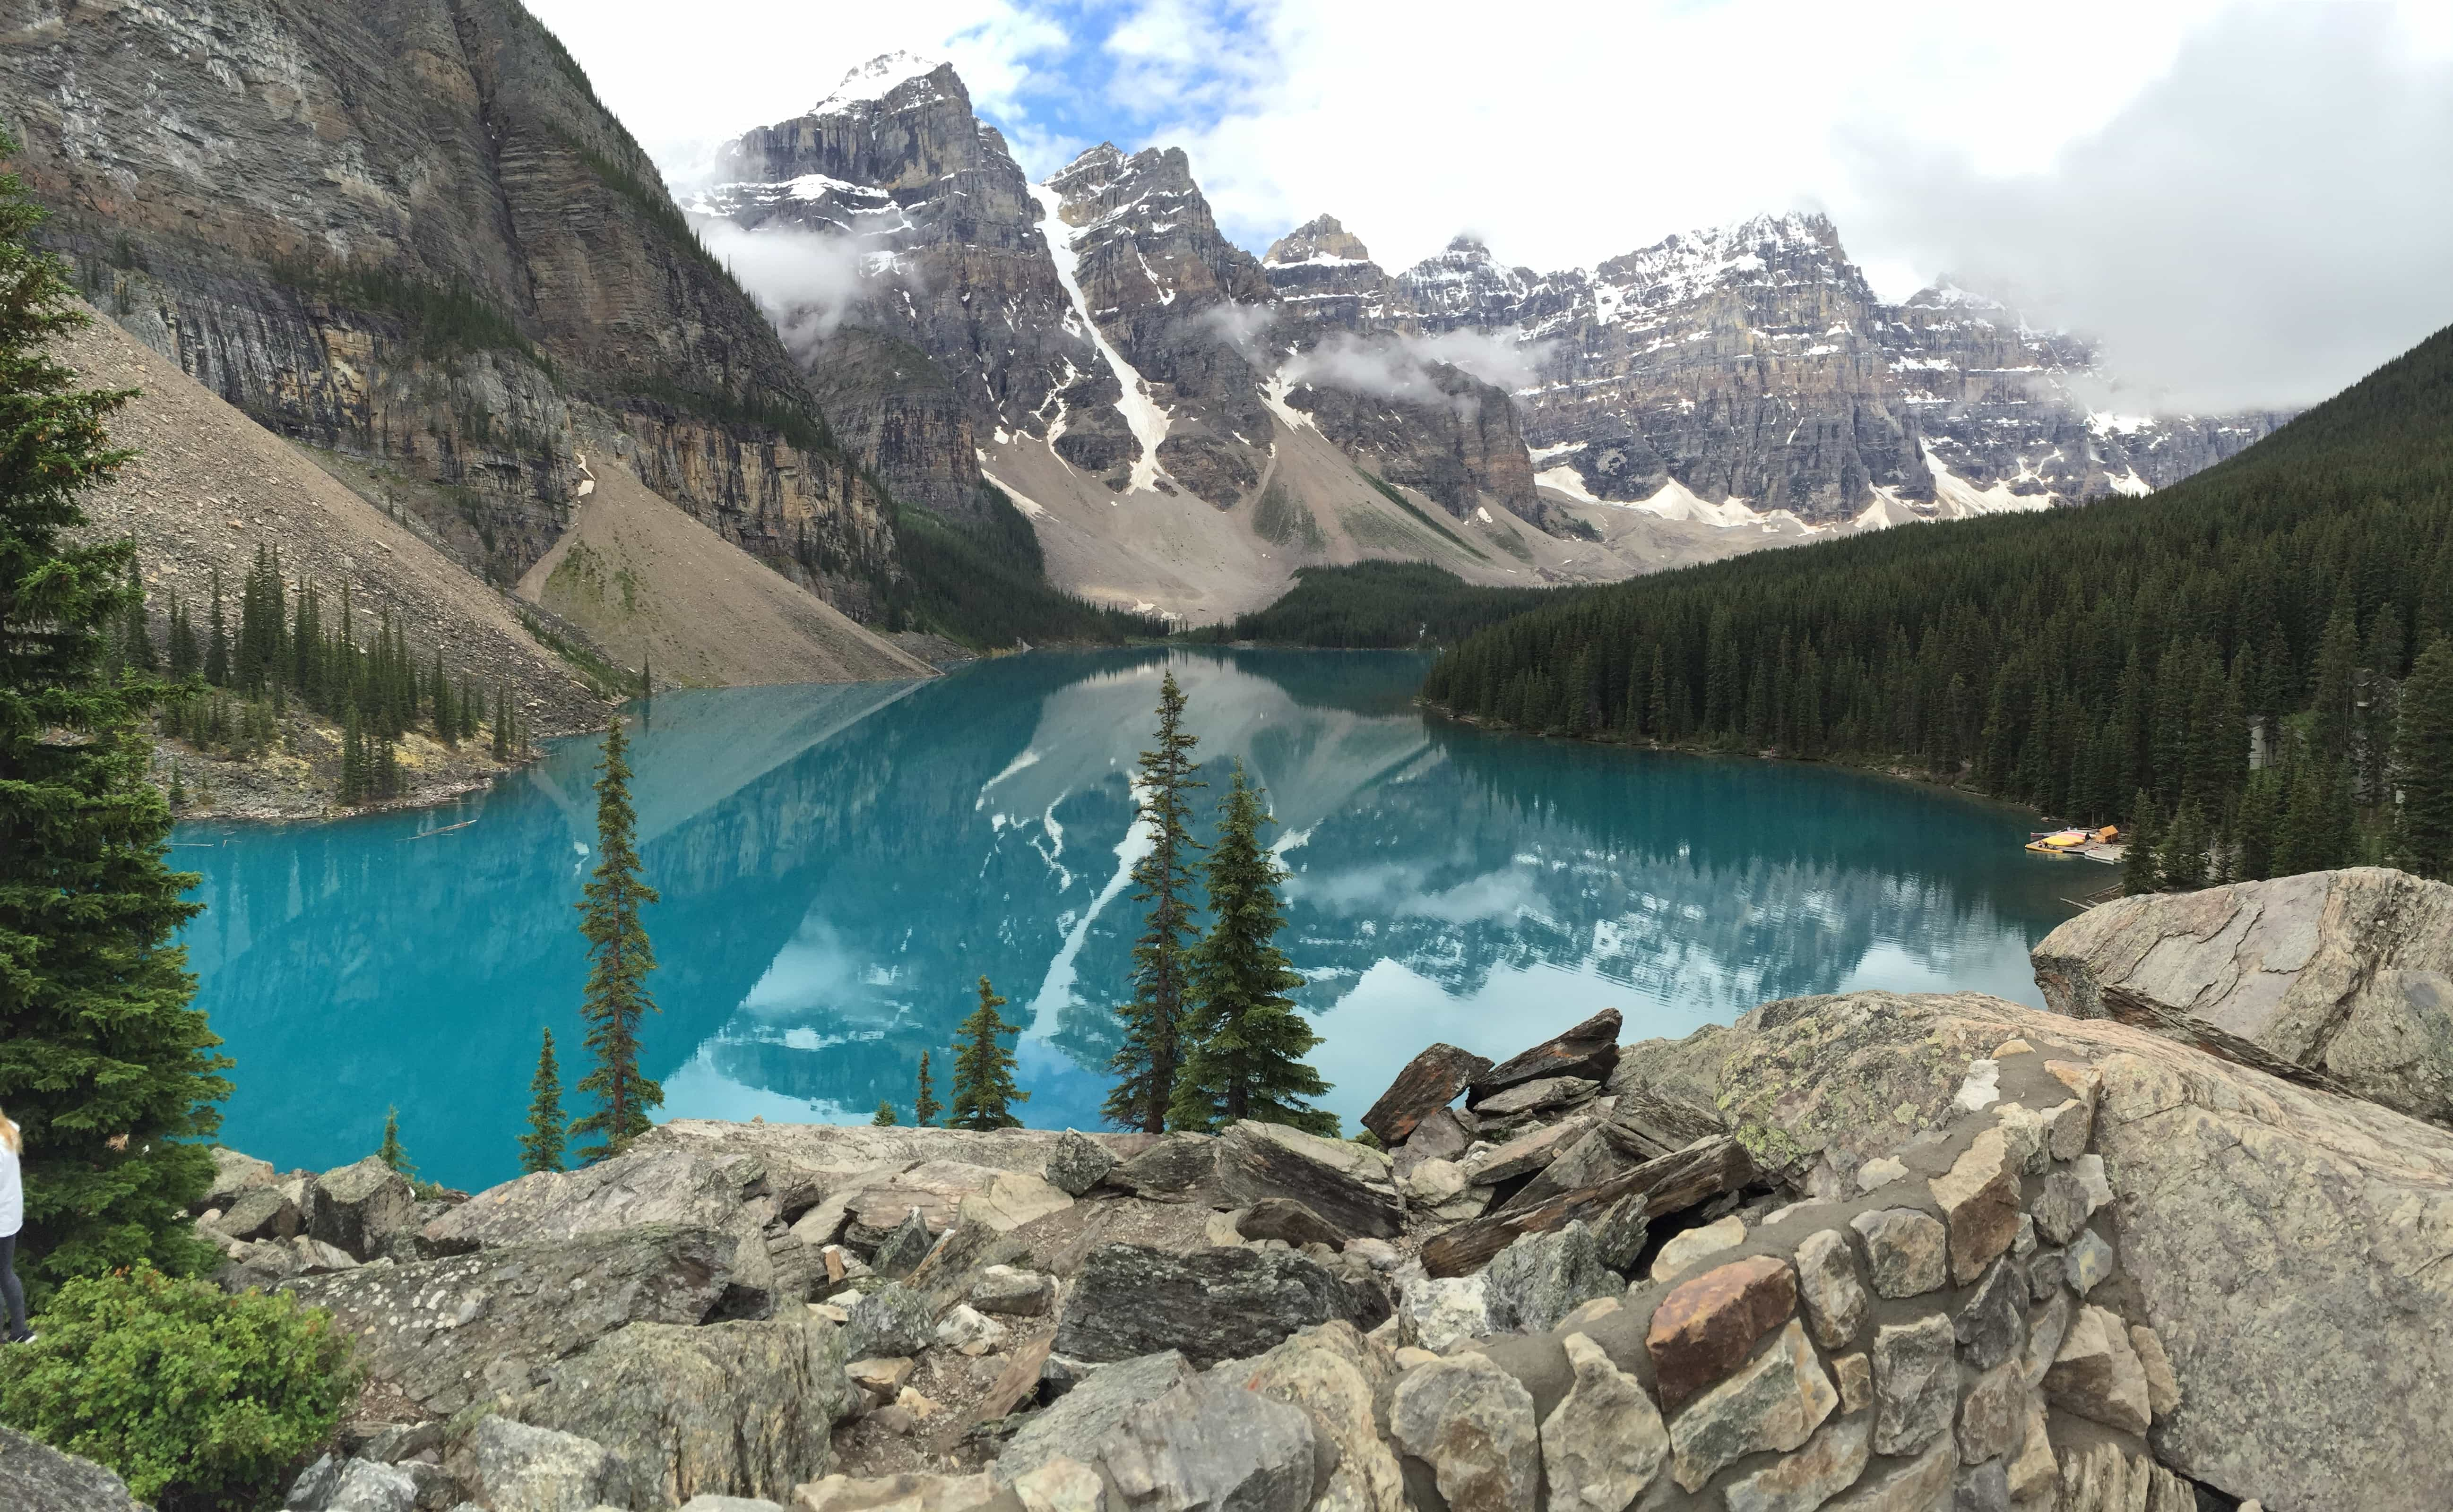 Things to do in Canada: visit Banff National Park